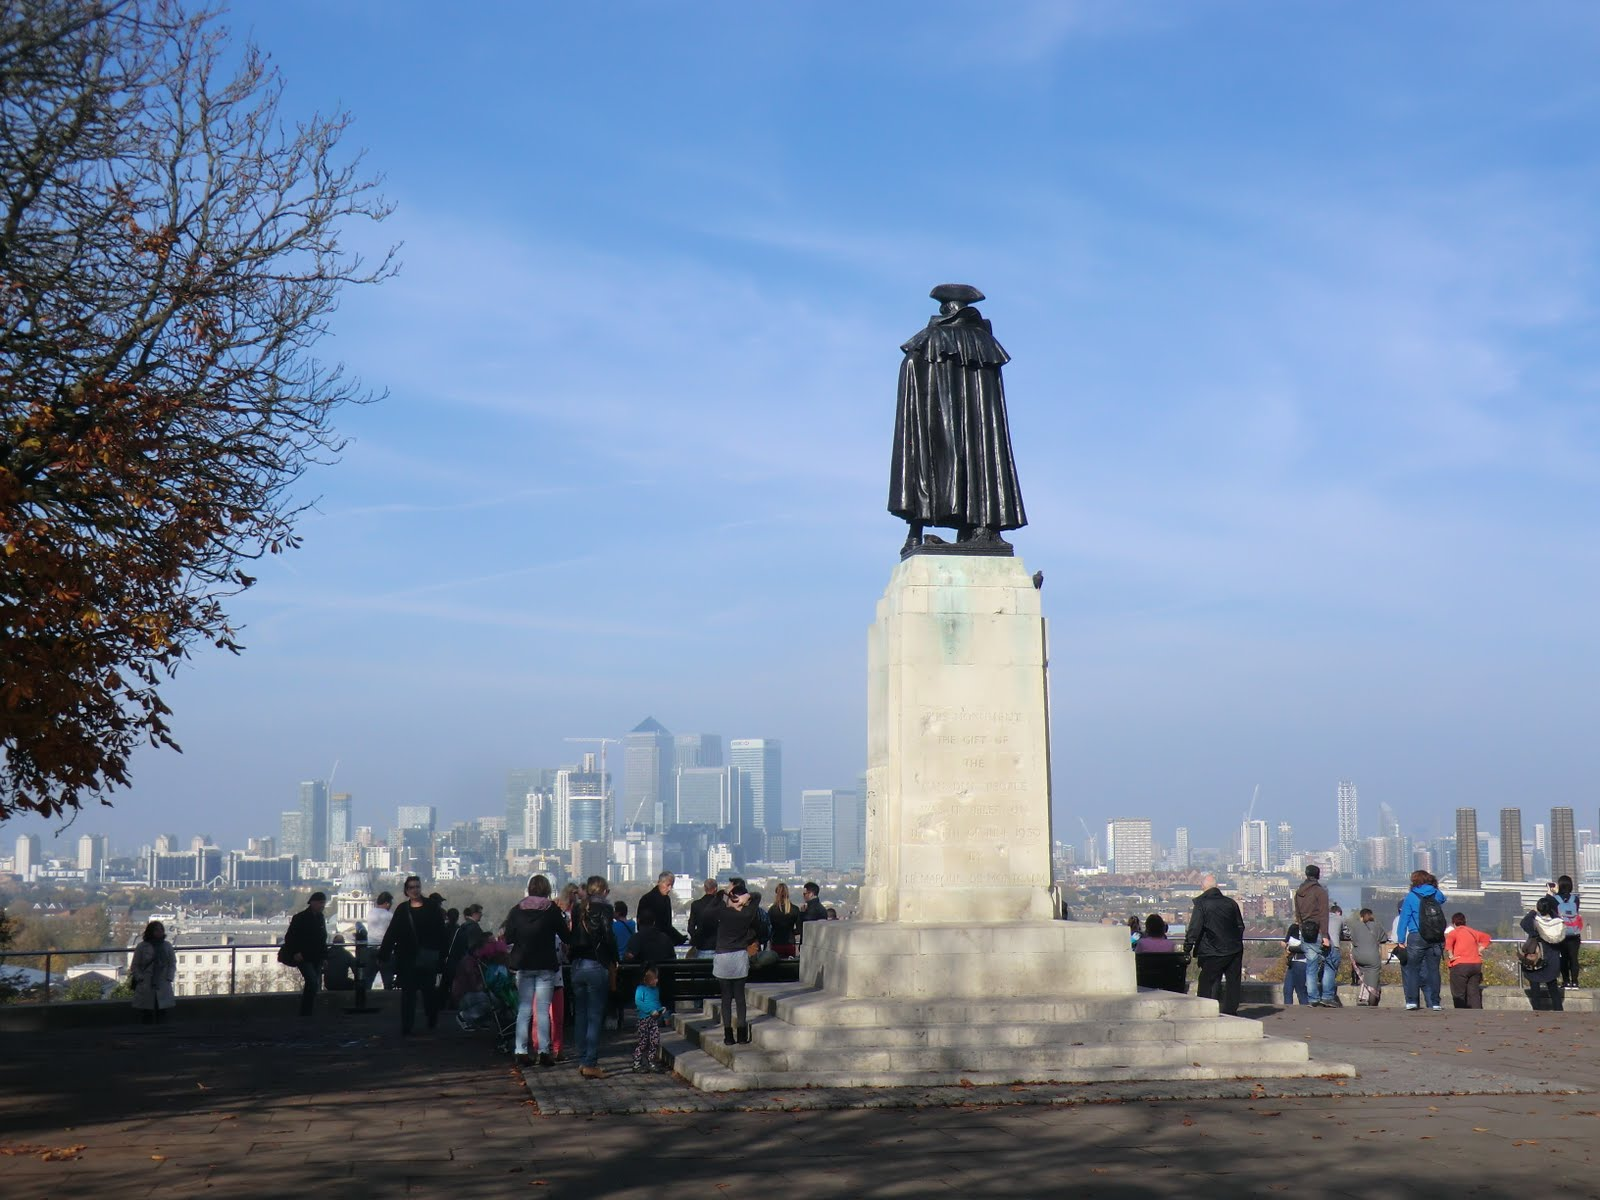 CIMG0949 Wolfe statue, Greenwich Park